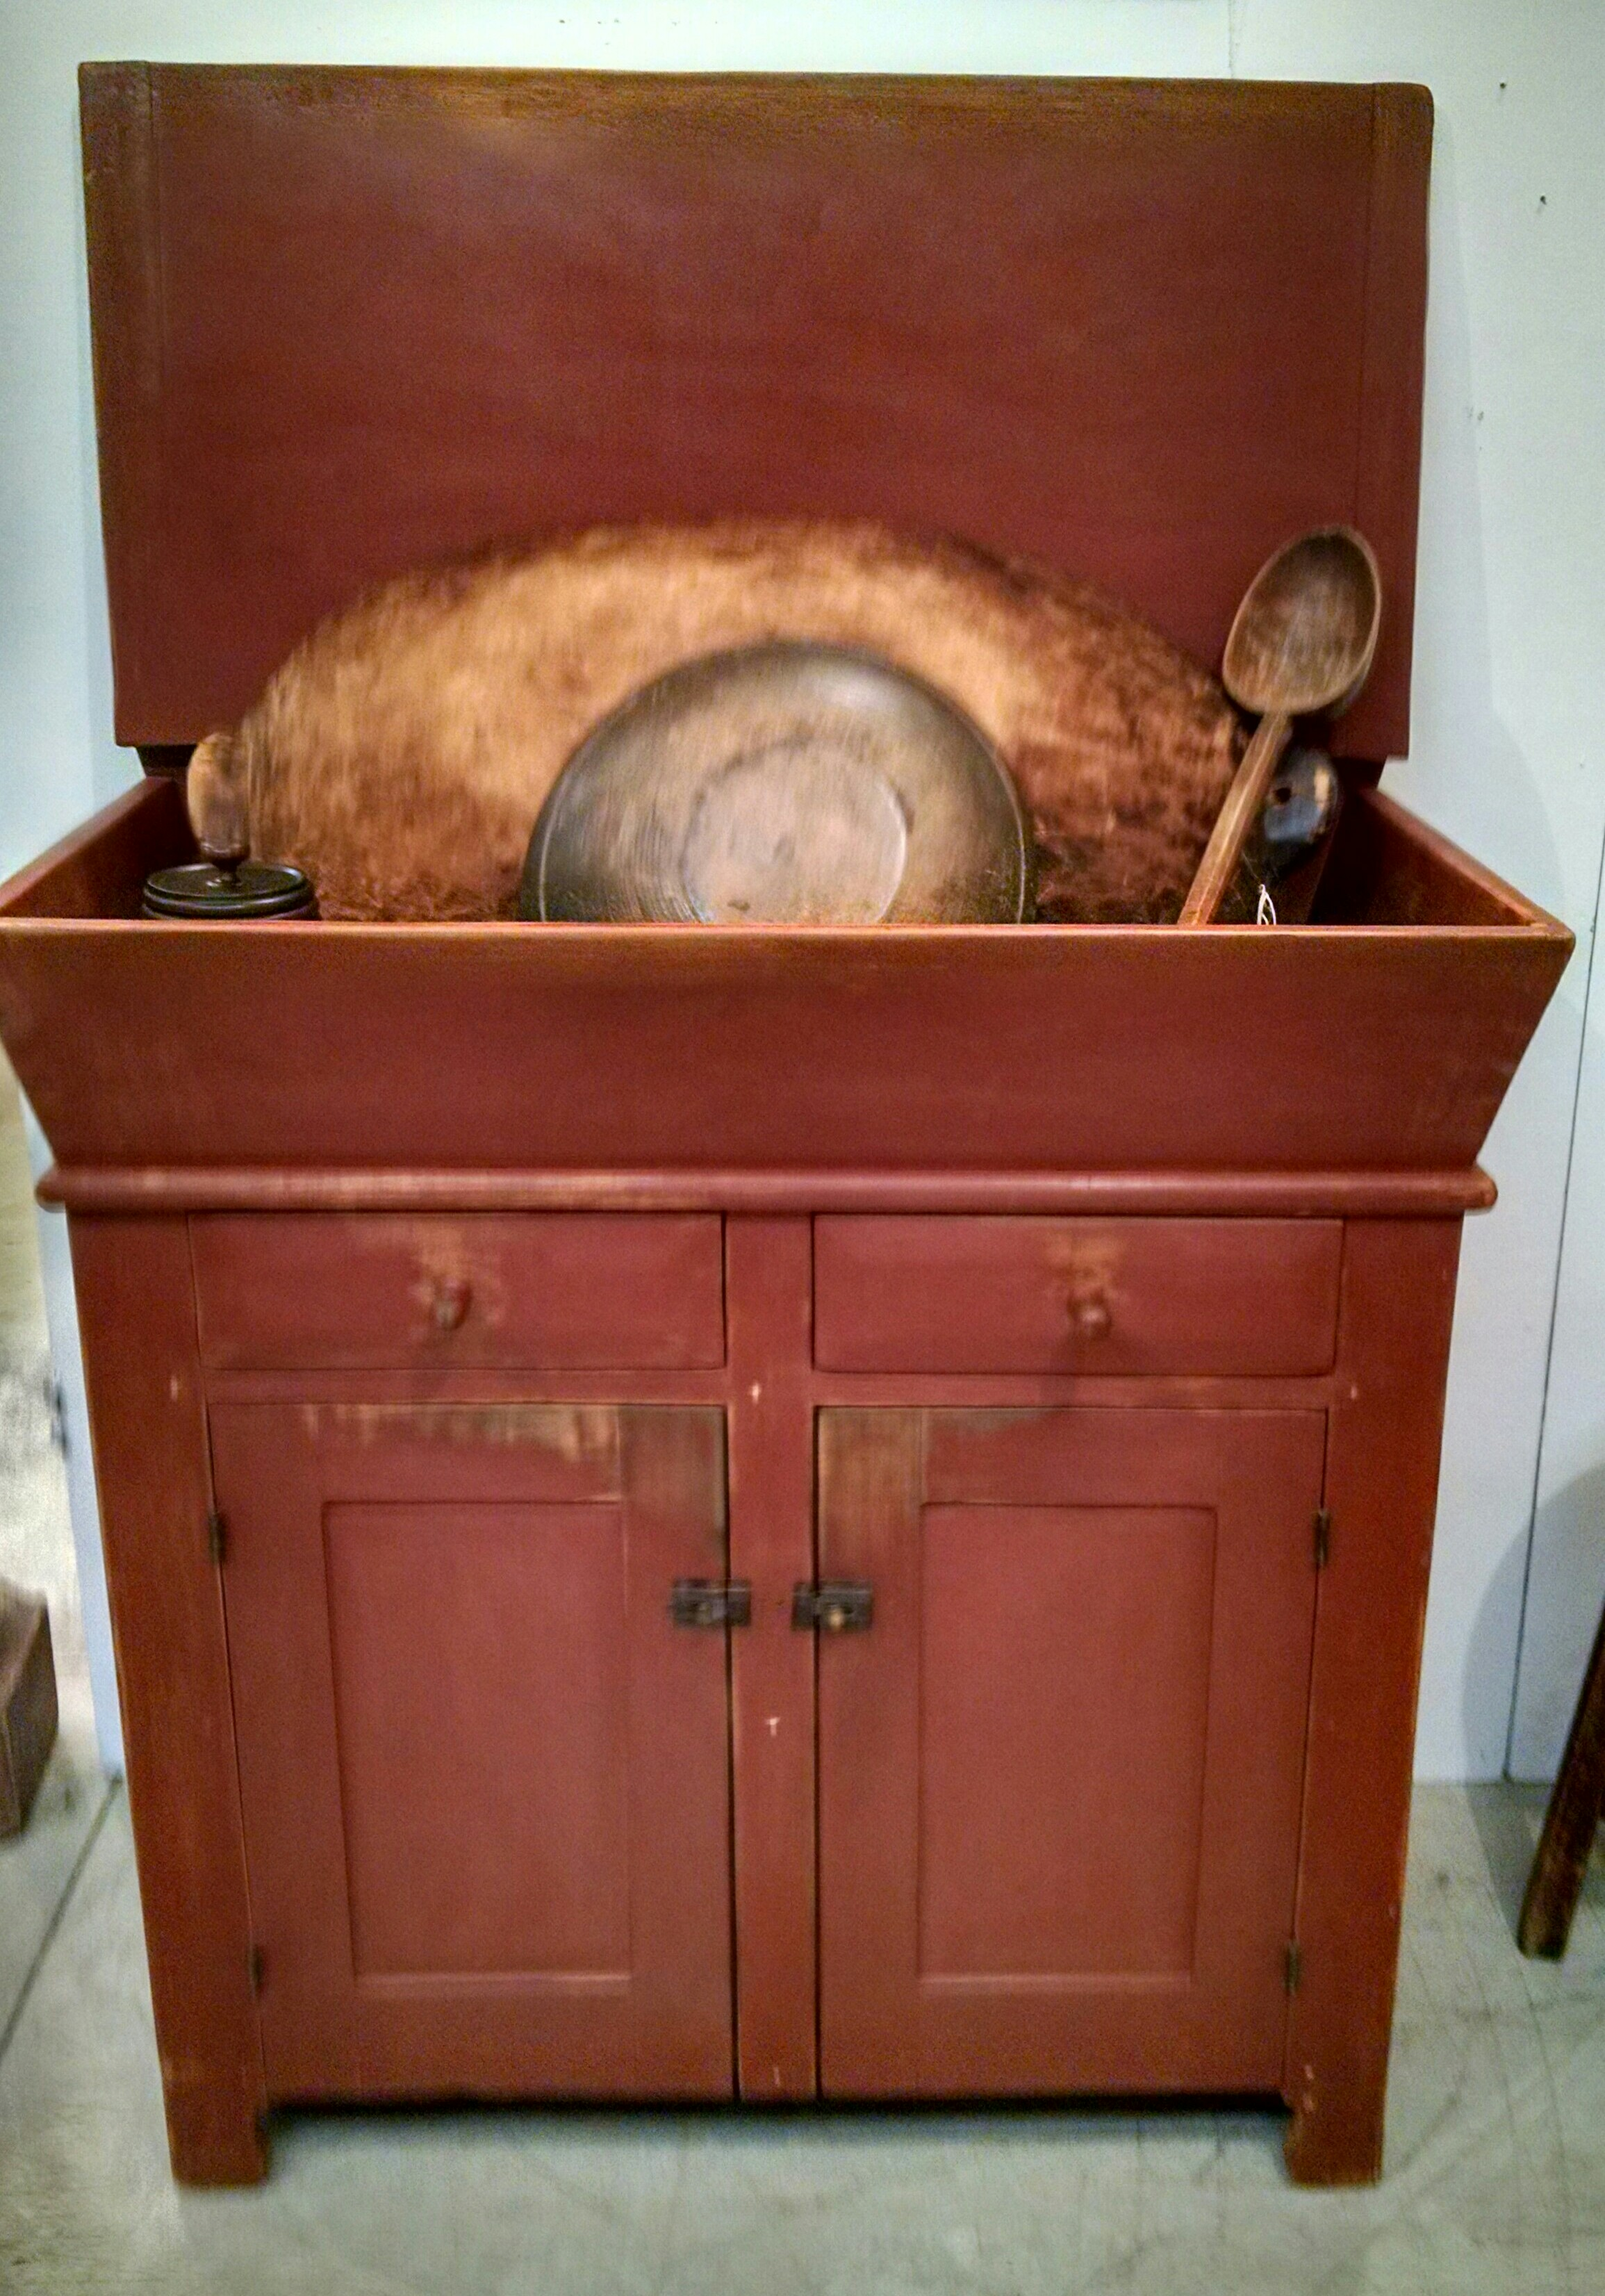 Small Early Dry Sink with Lid